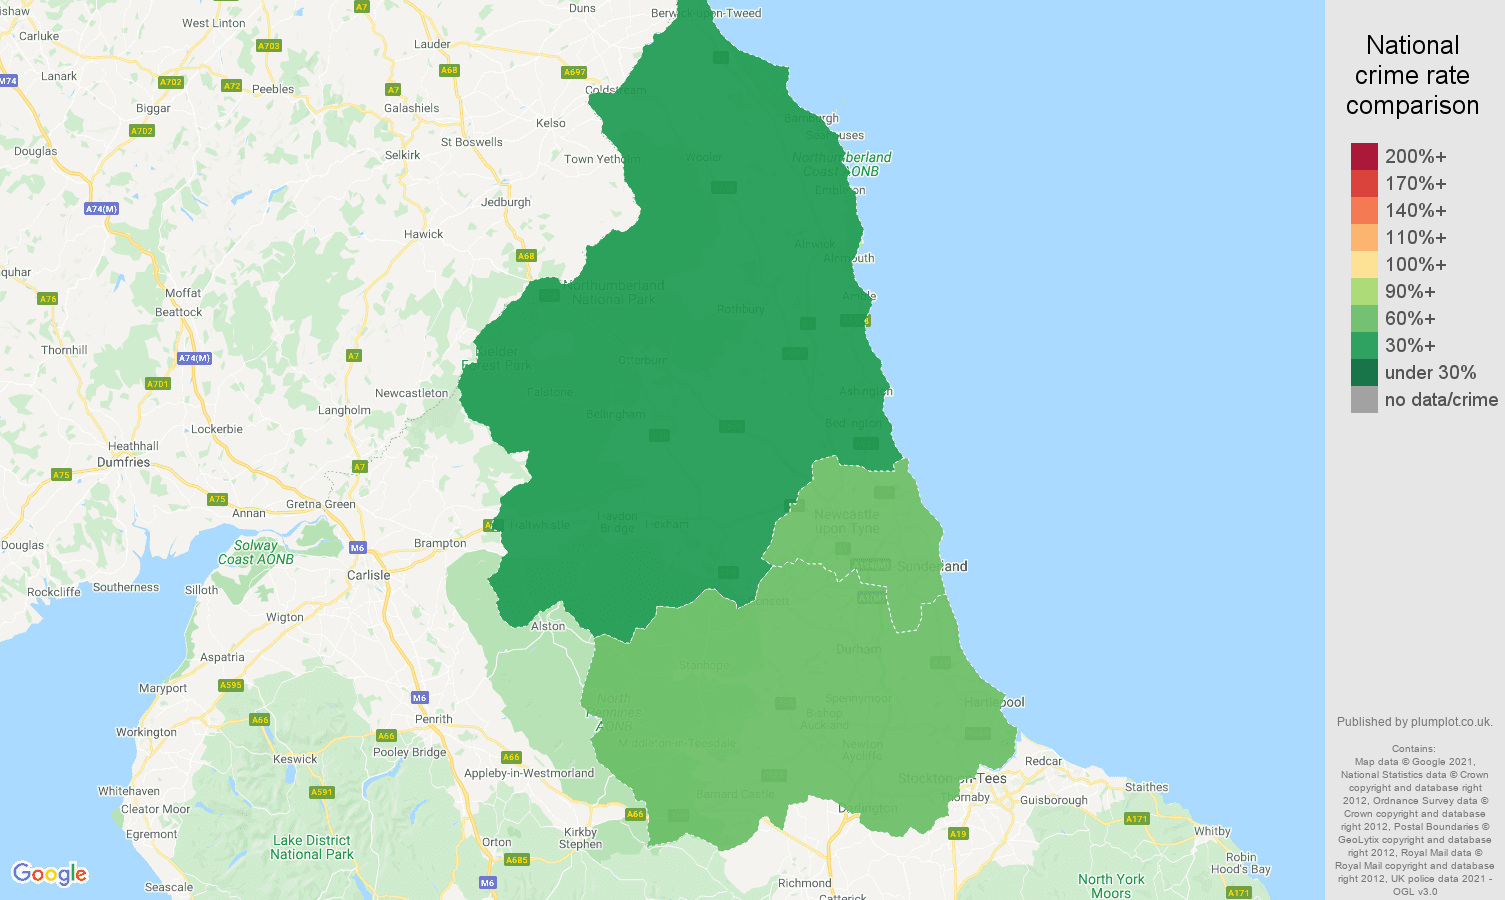 North East theft from the person crime rate comparison map